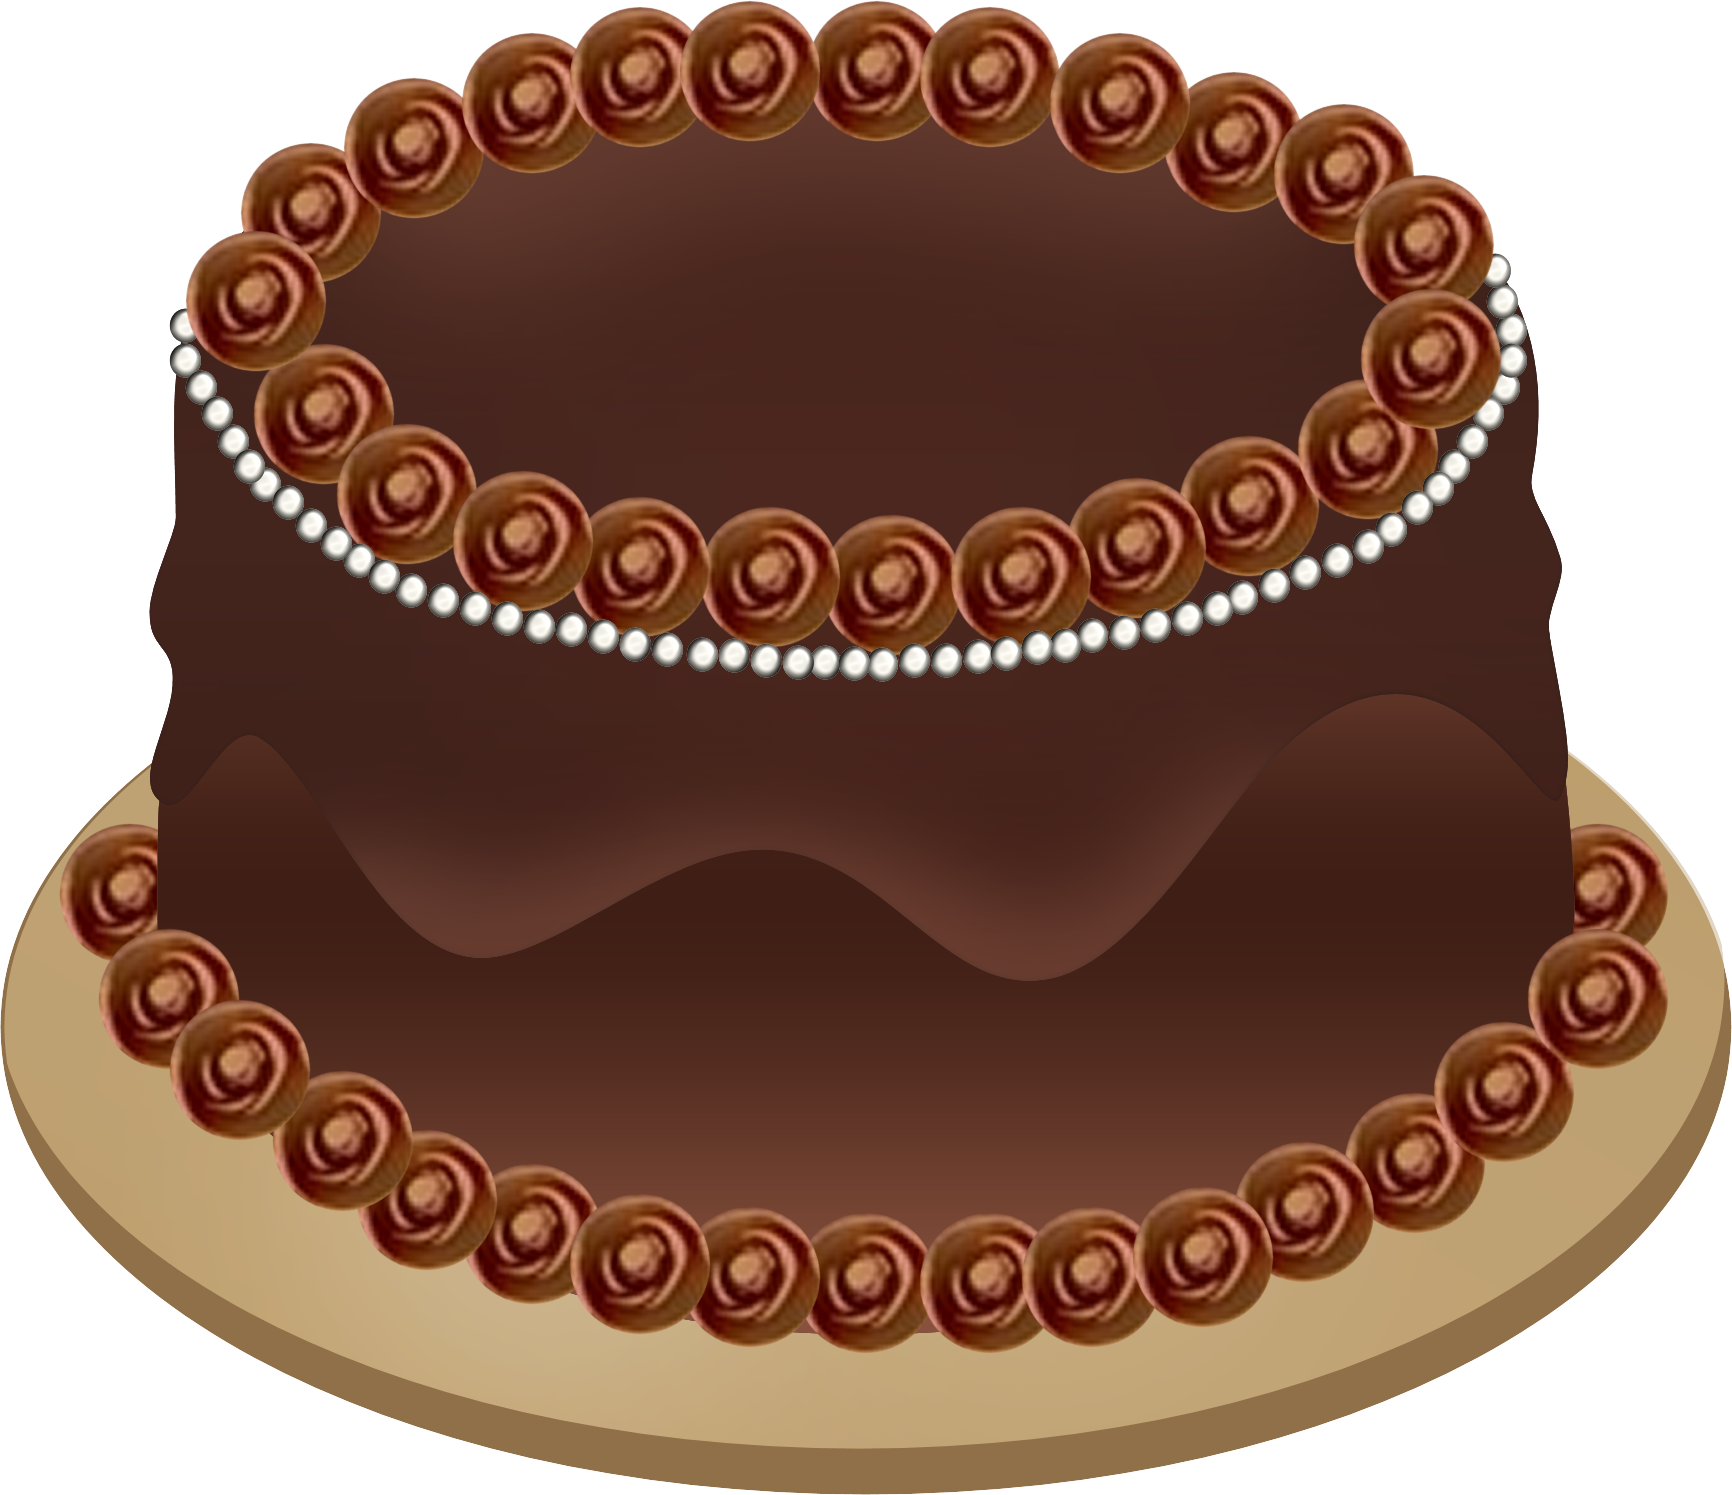 Chocolate Cake clipart Chocolate clipart clip black collection